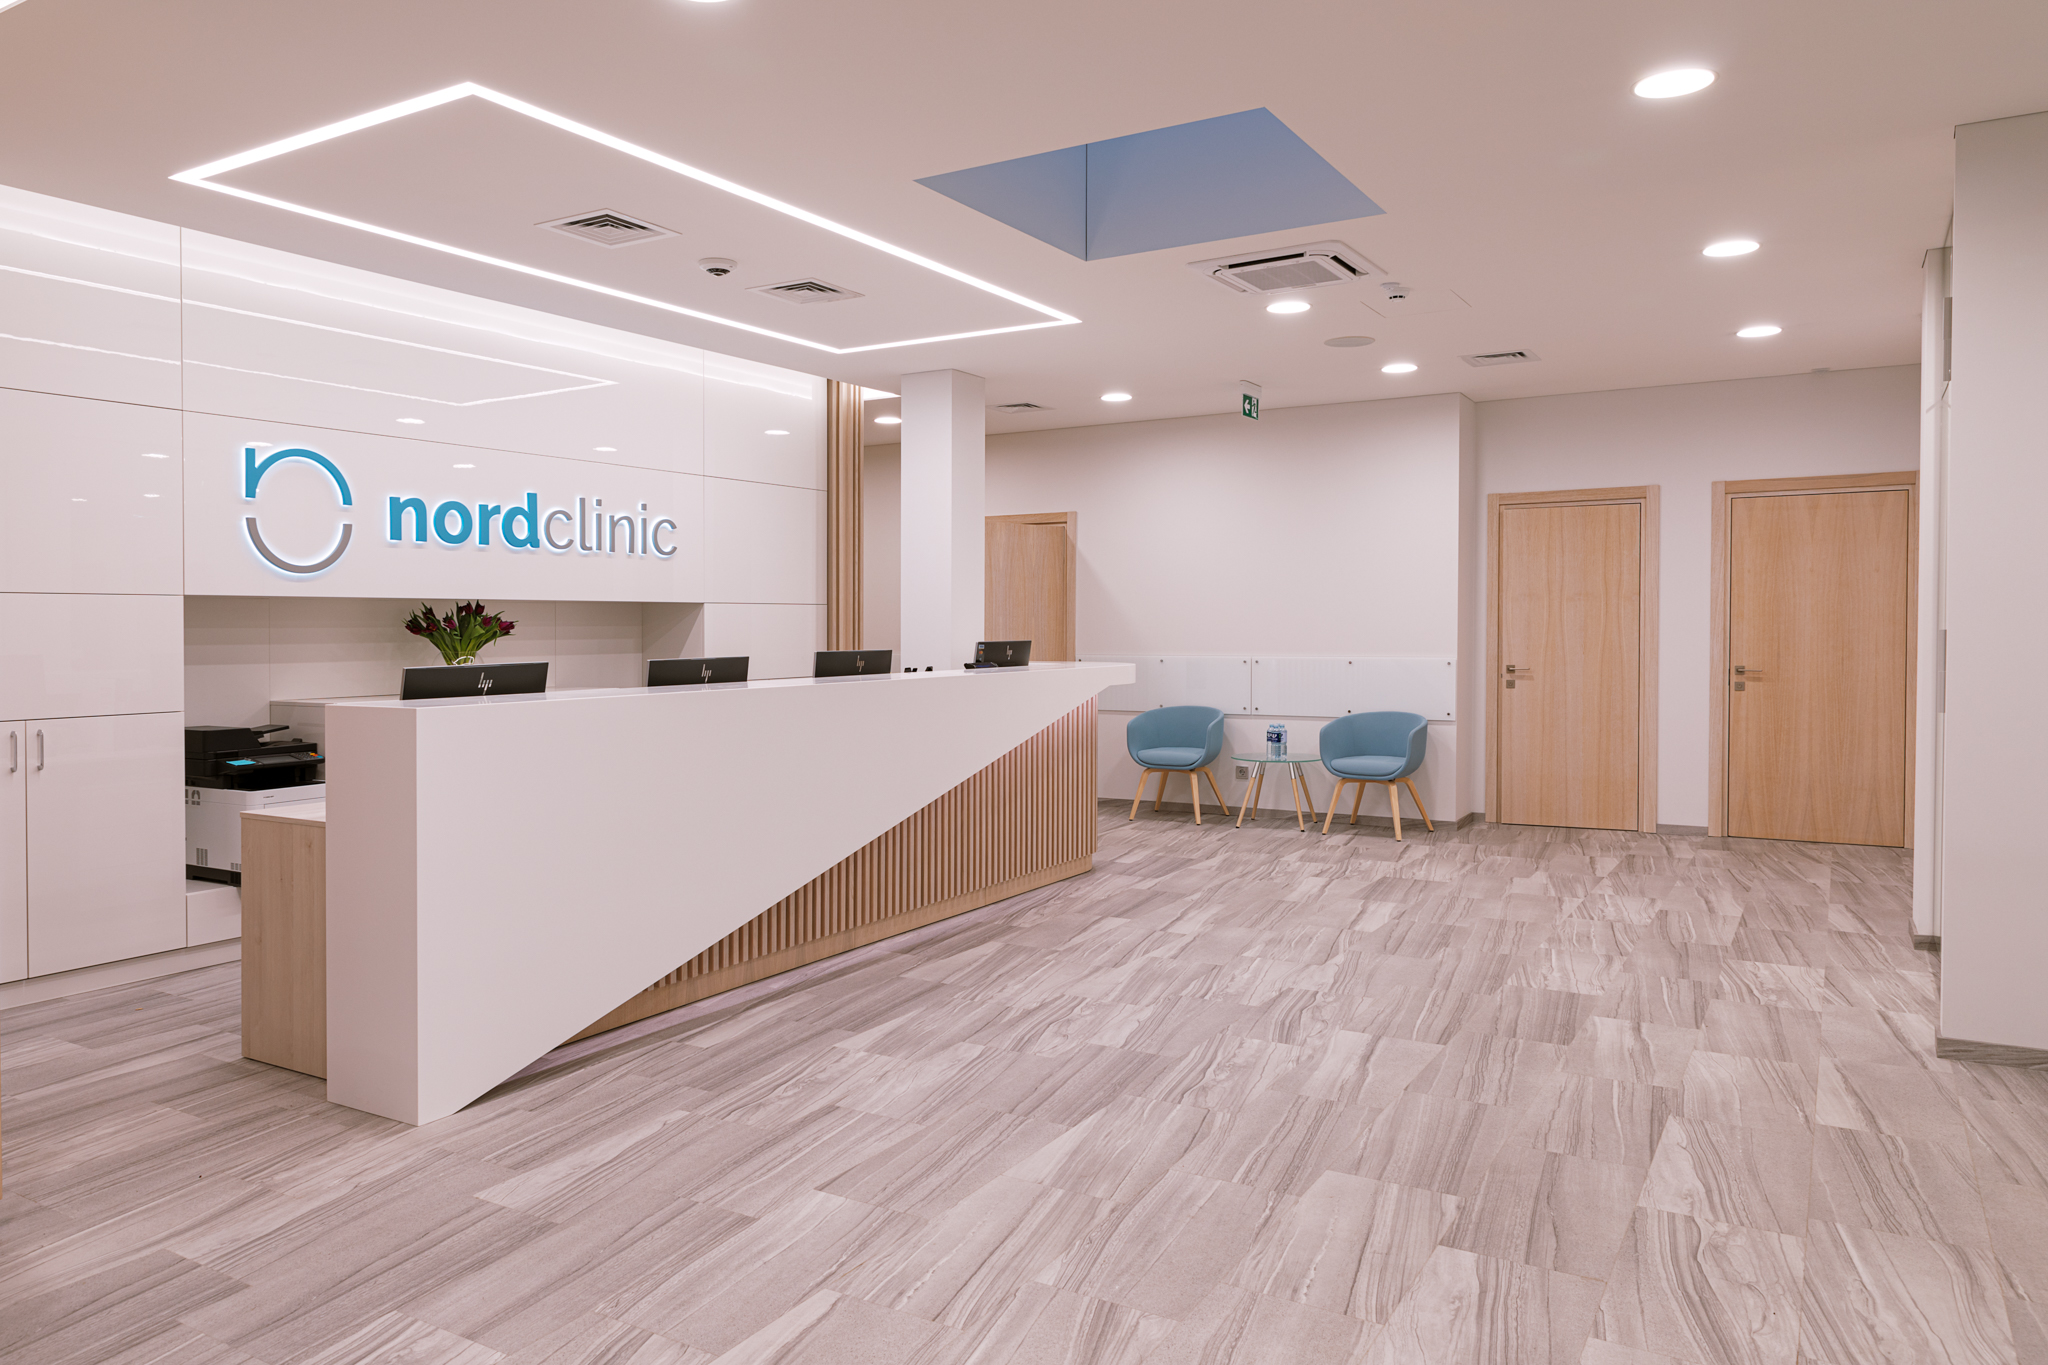 NORDCLINIC (13)